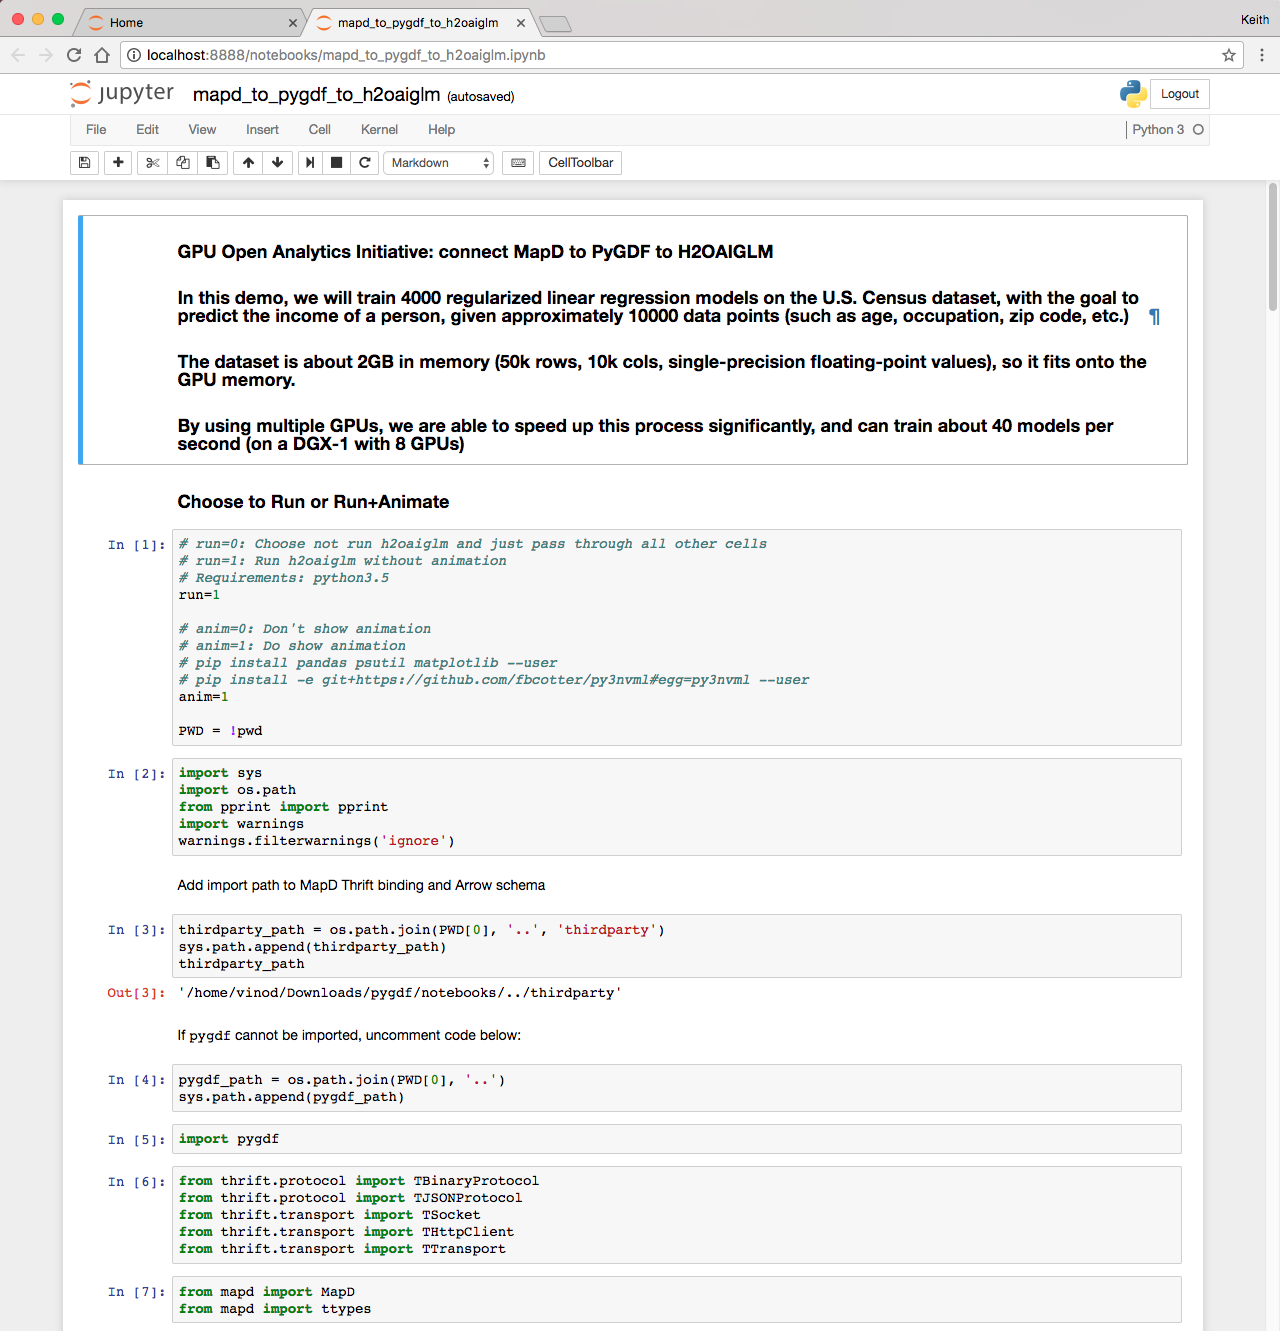 Figure 3: The GPU Open Analytics Initiative (GOAI) demo Python notebook running in a browser.